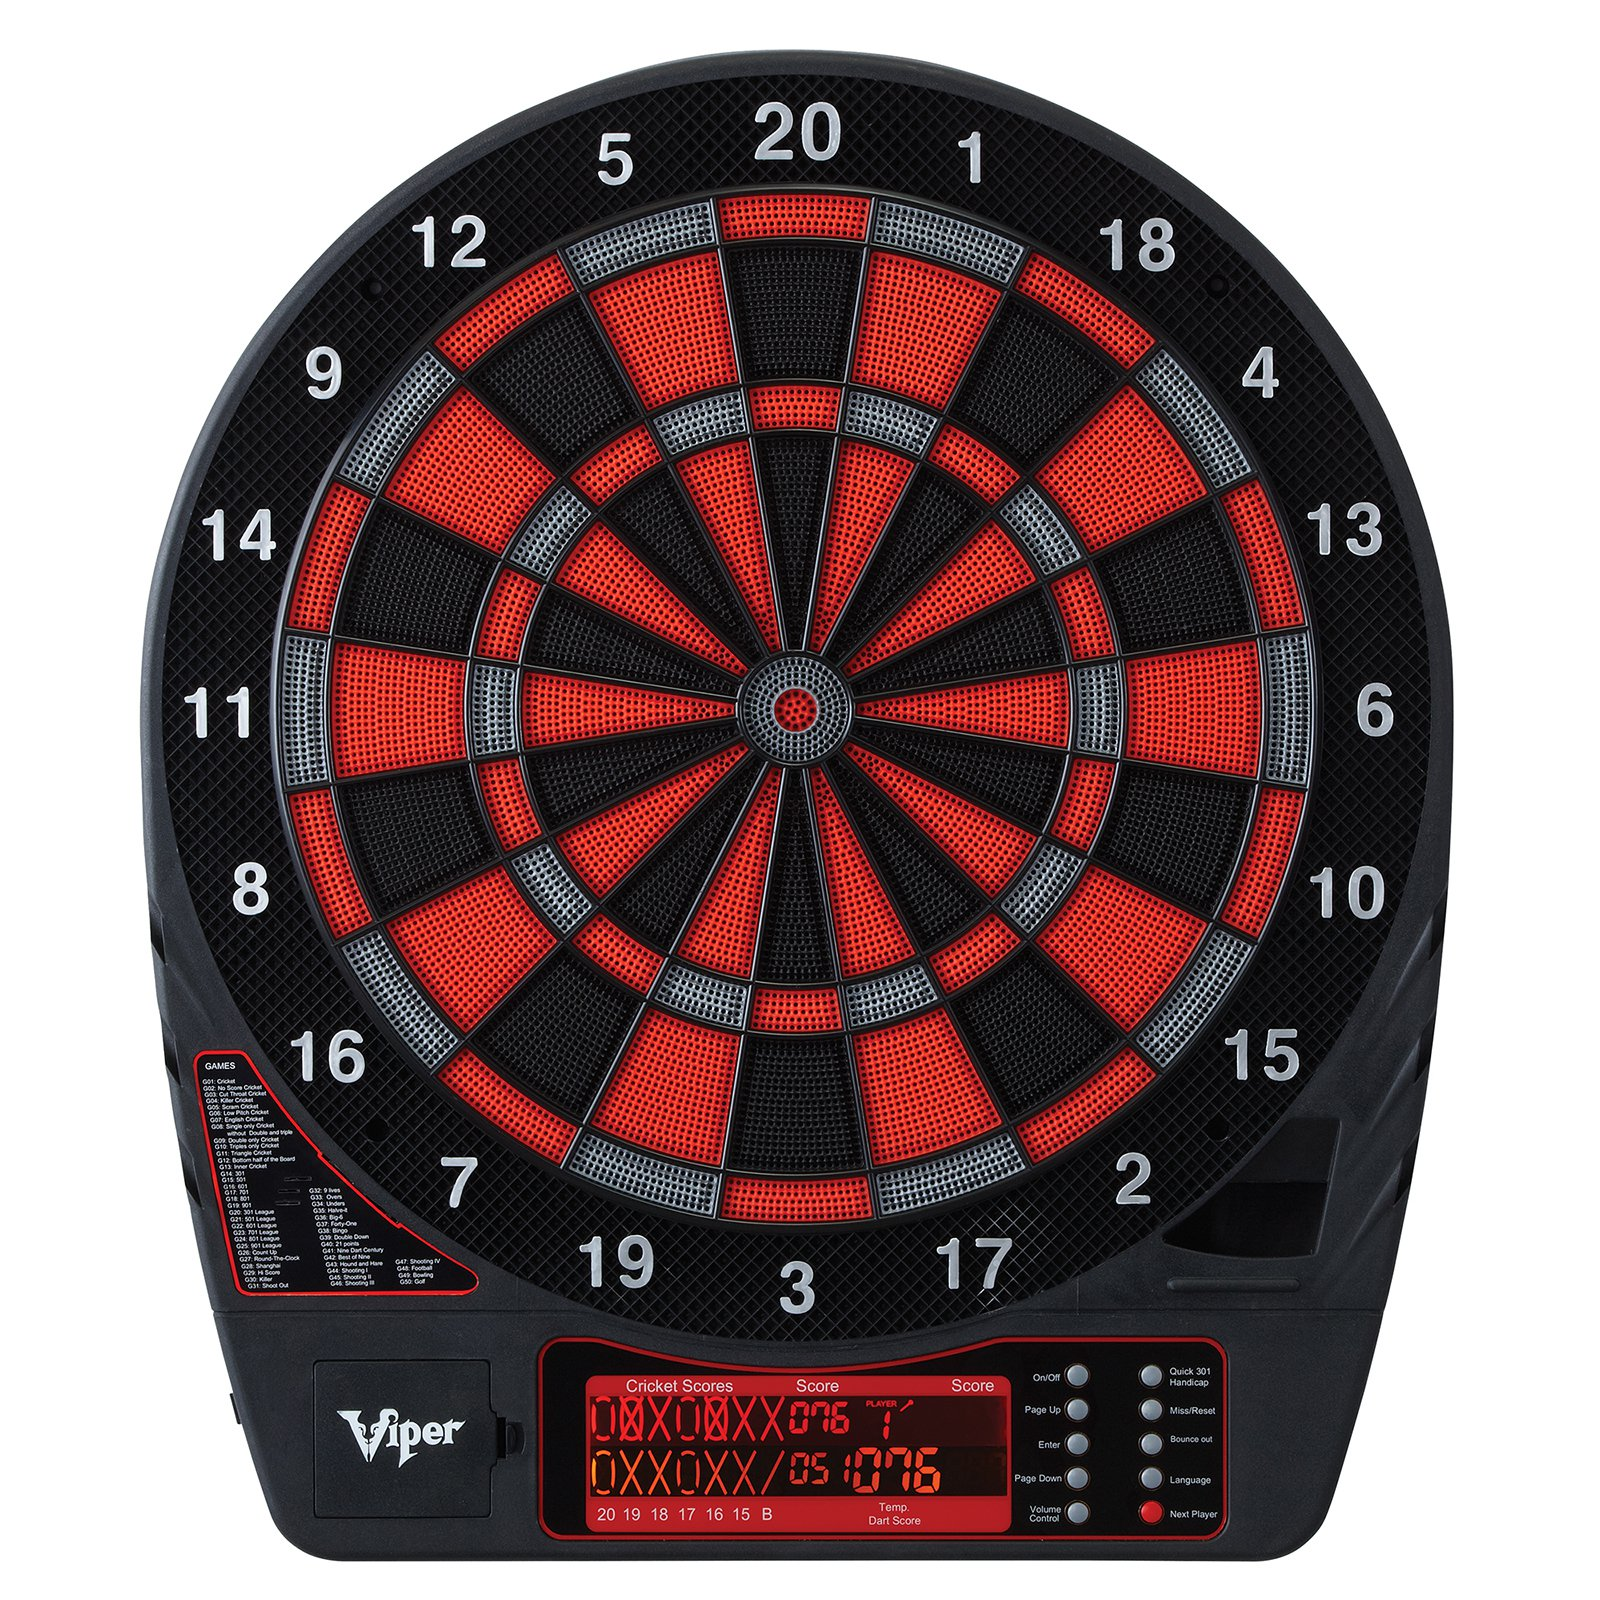 Viper Specter Electronic Dart Board and Darts Set by Viper